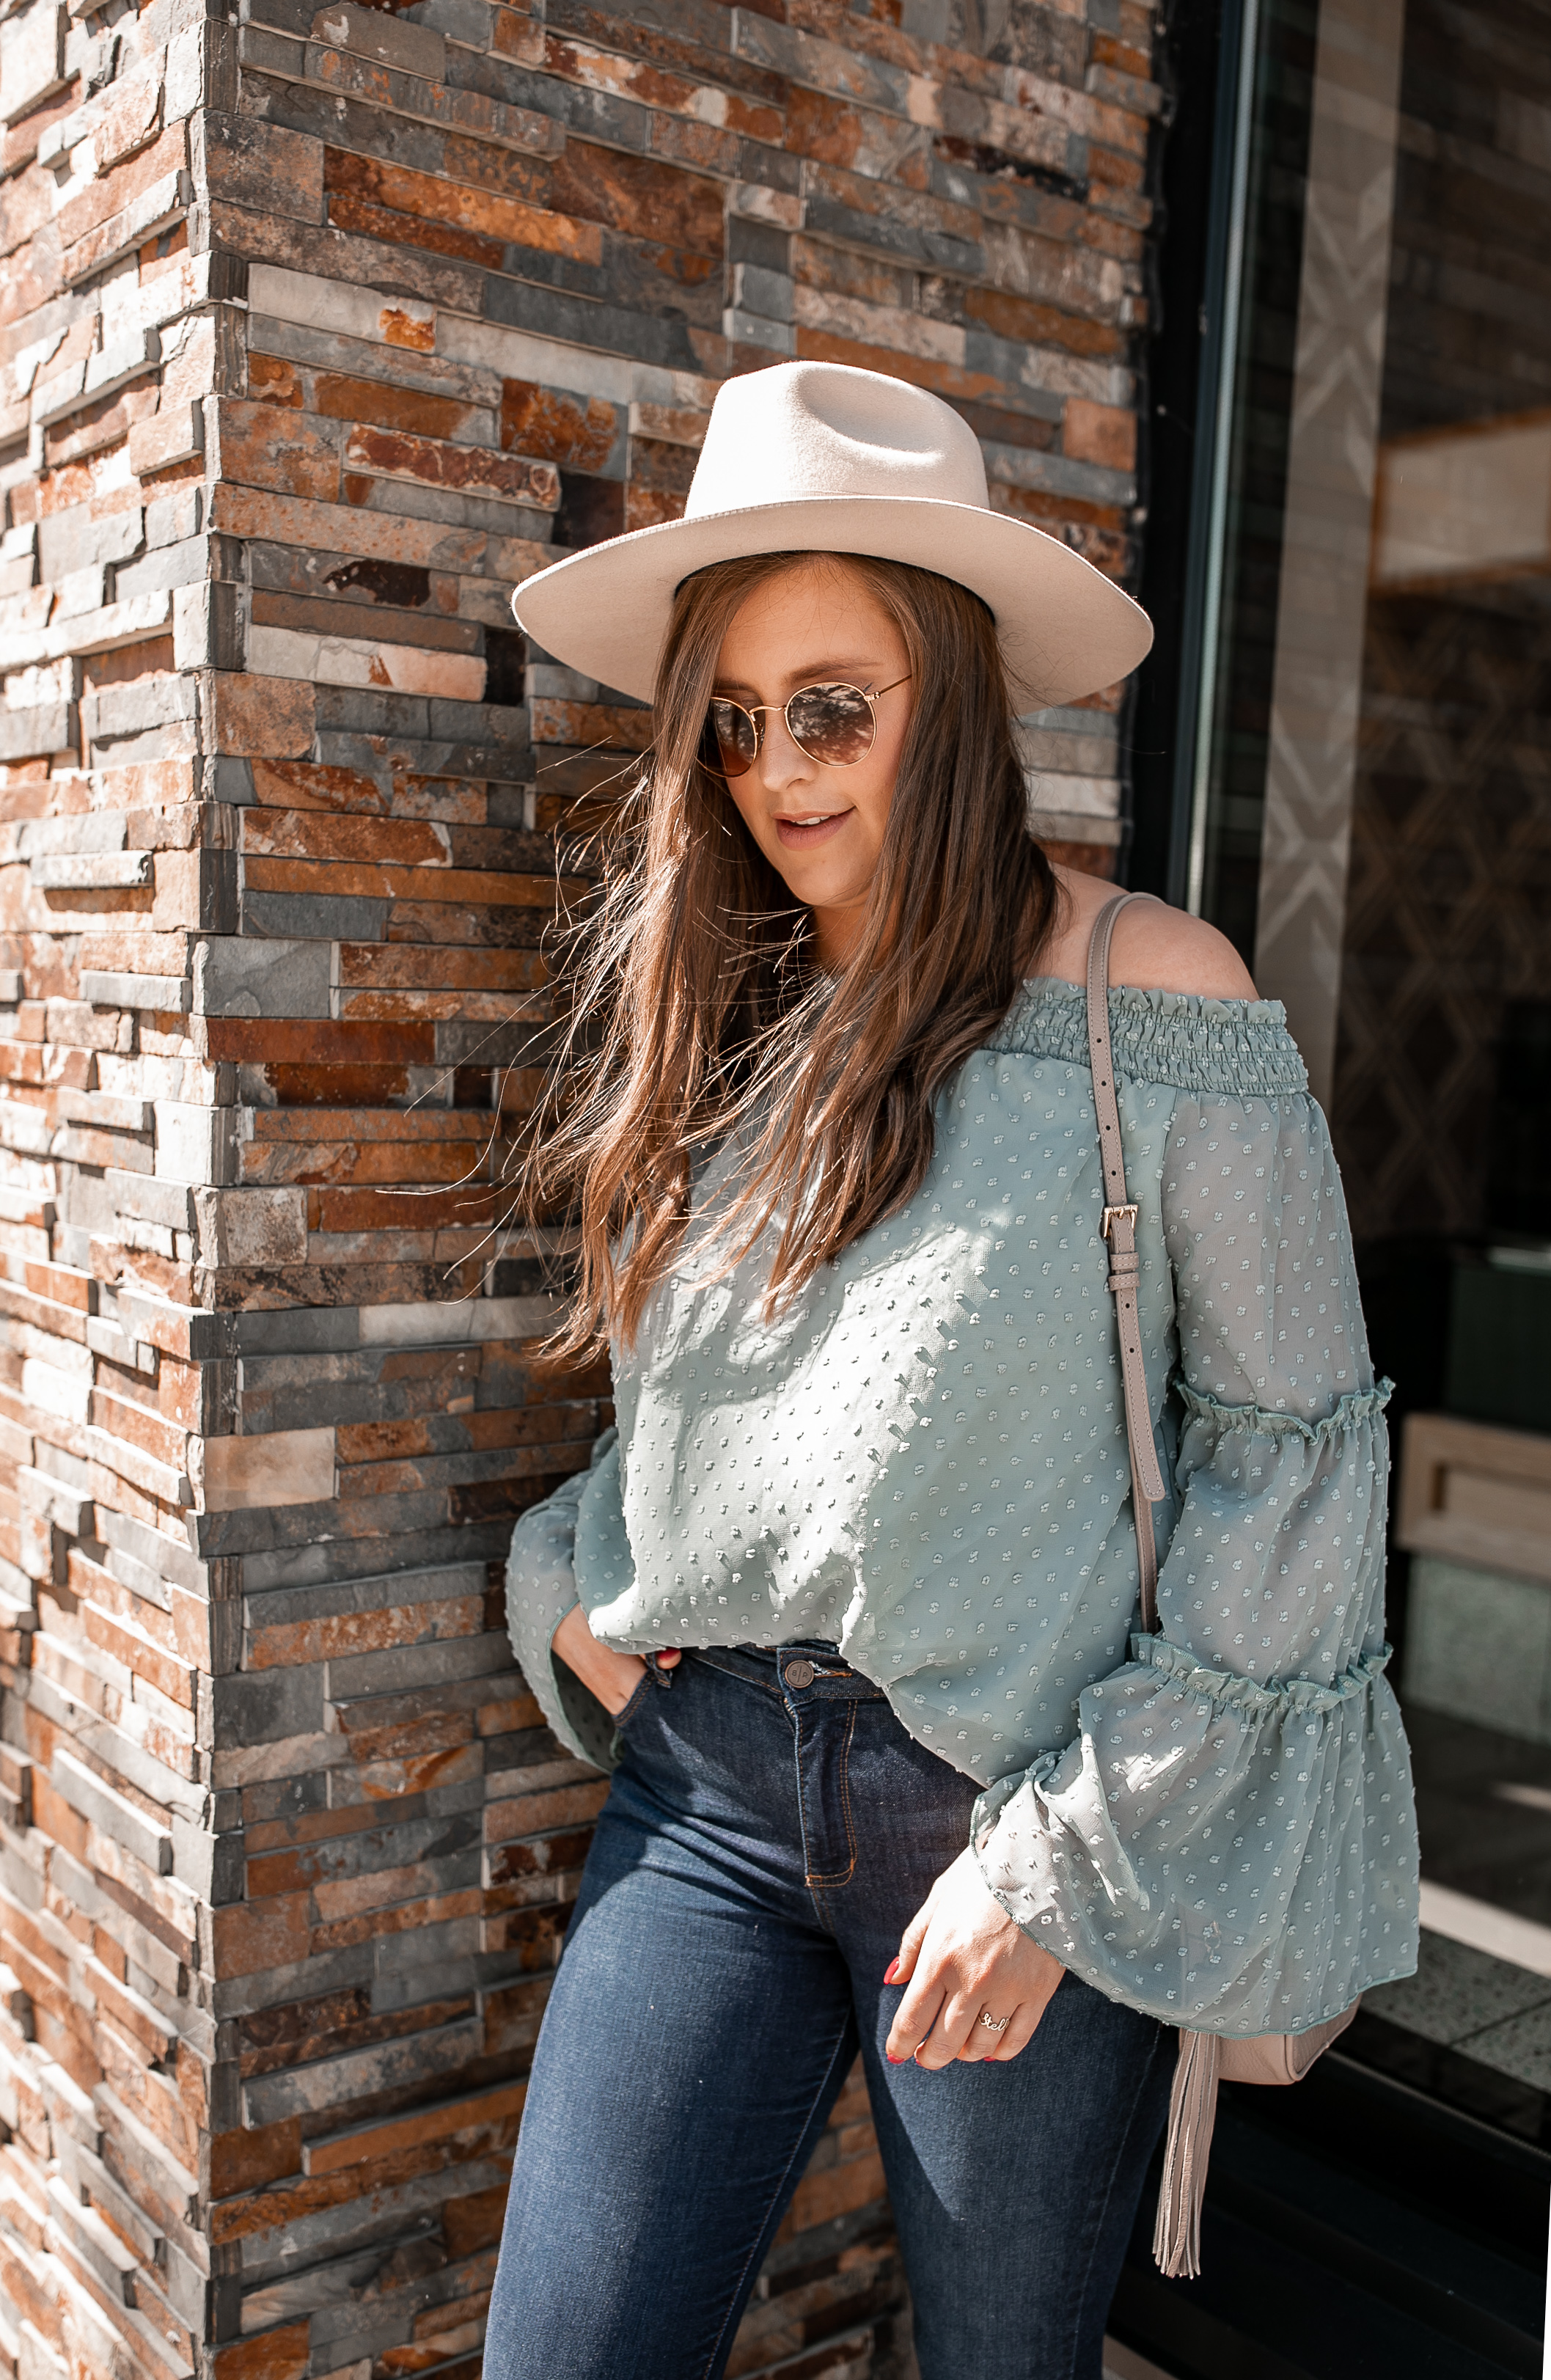 Affordable Off The Shoulder Top @stylebyjulianne